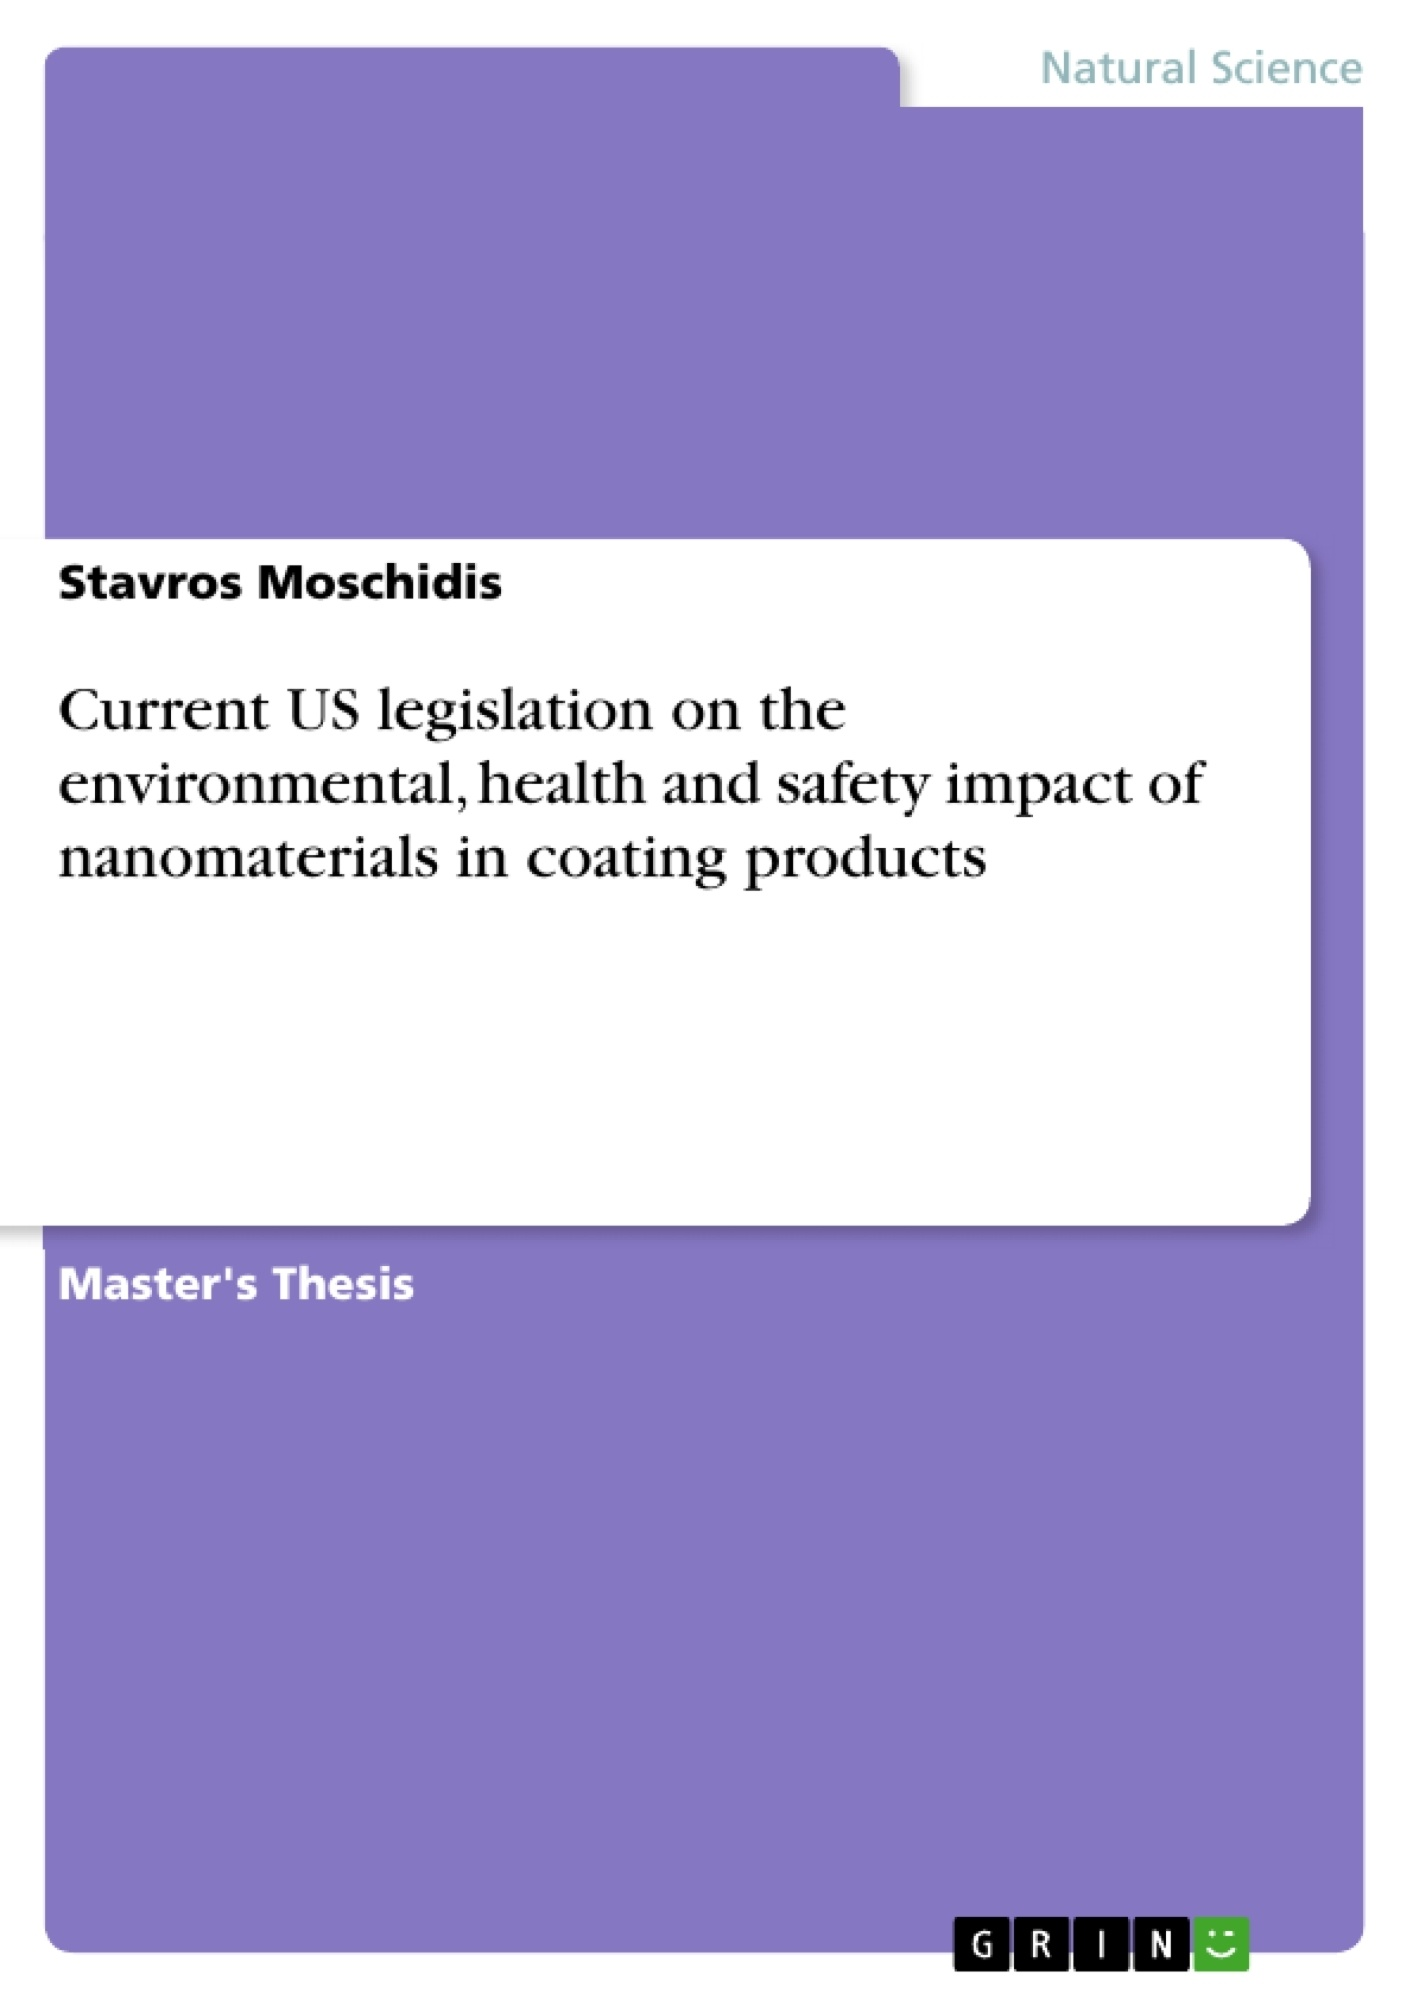 Title: Current US legislation on the environmental, health and safety impact of nanomaterials in coating products